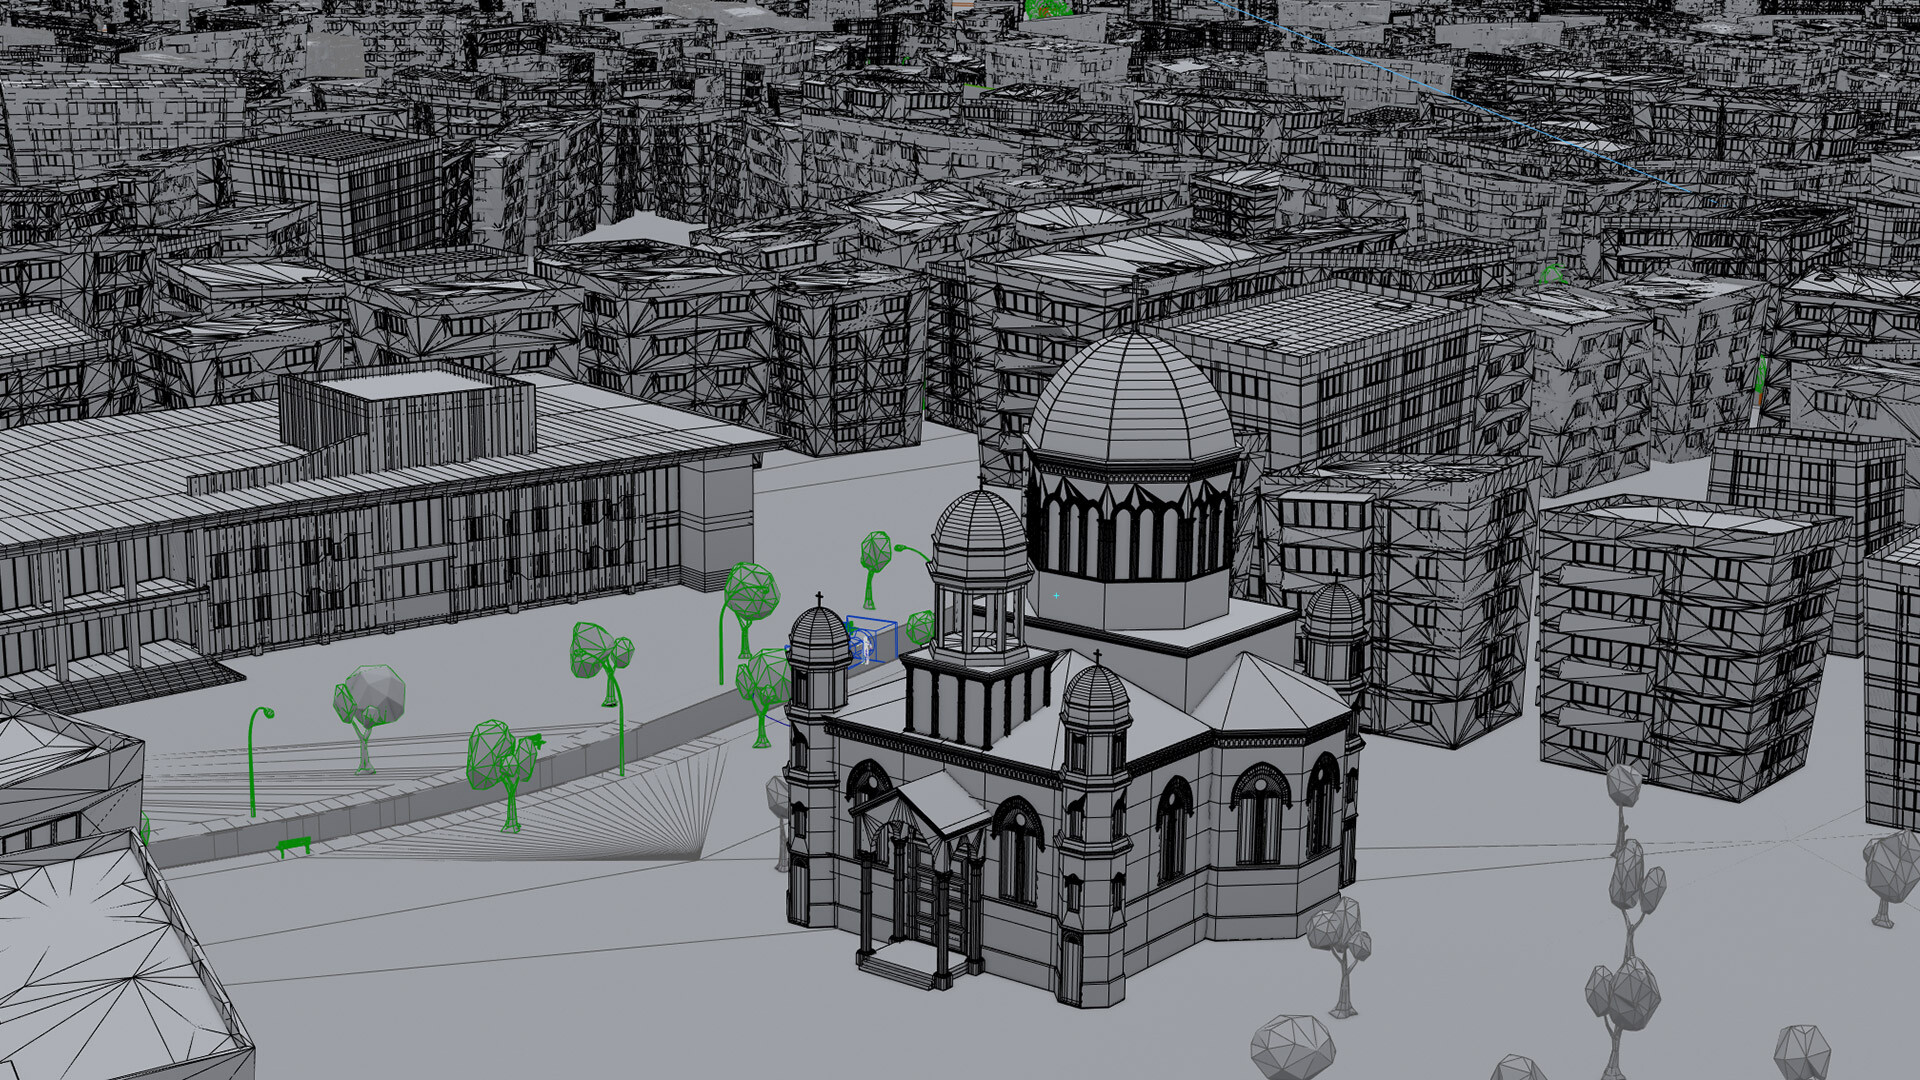 Wireframe of the city